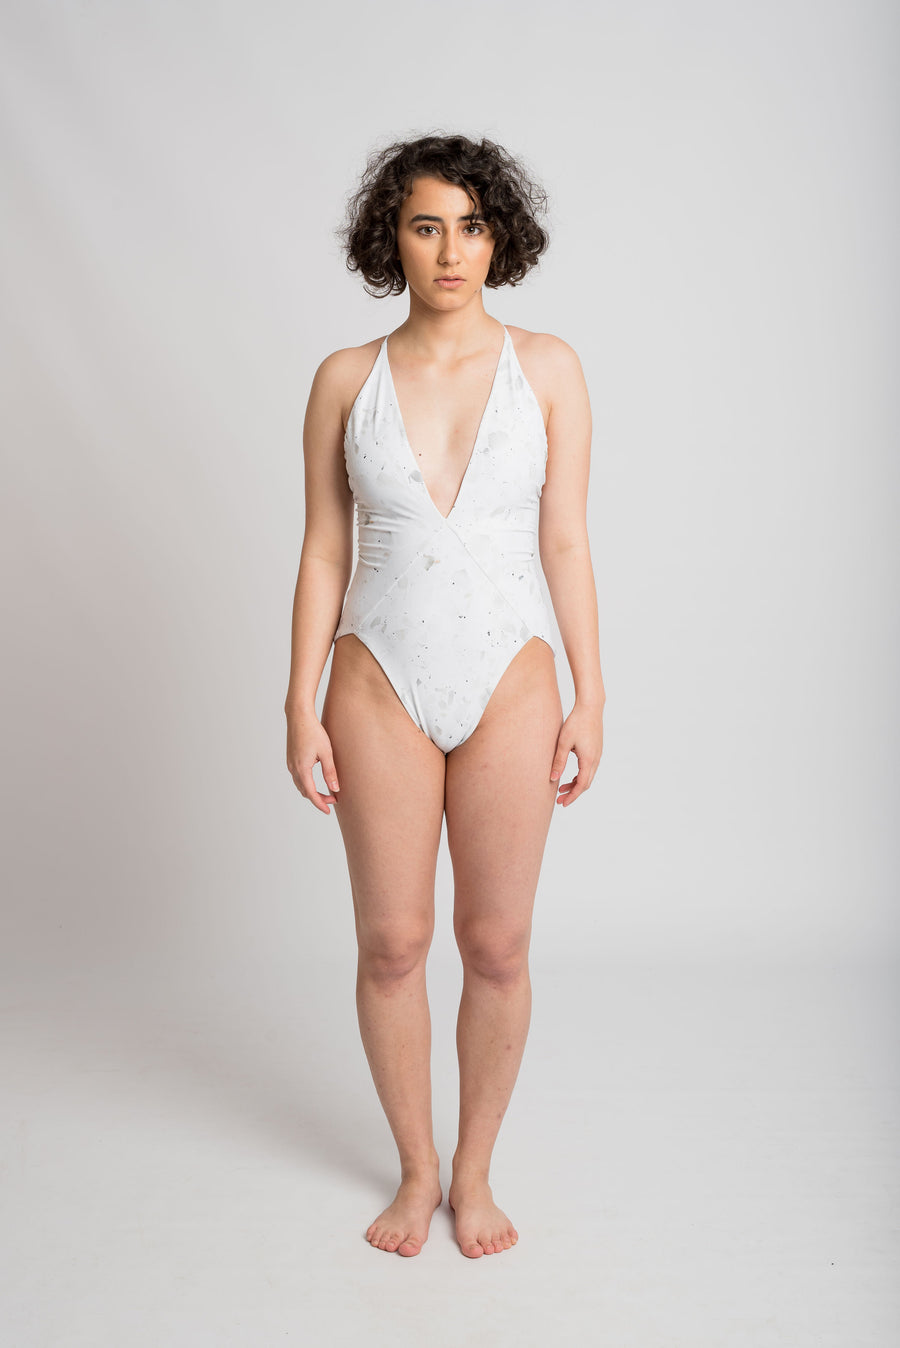 Ethical and sustainable swimwear for women xxs to plus size, recycled ECONYL white v neck onepiece ethically made in Australia.